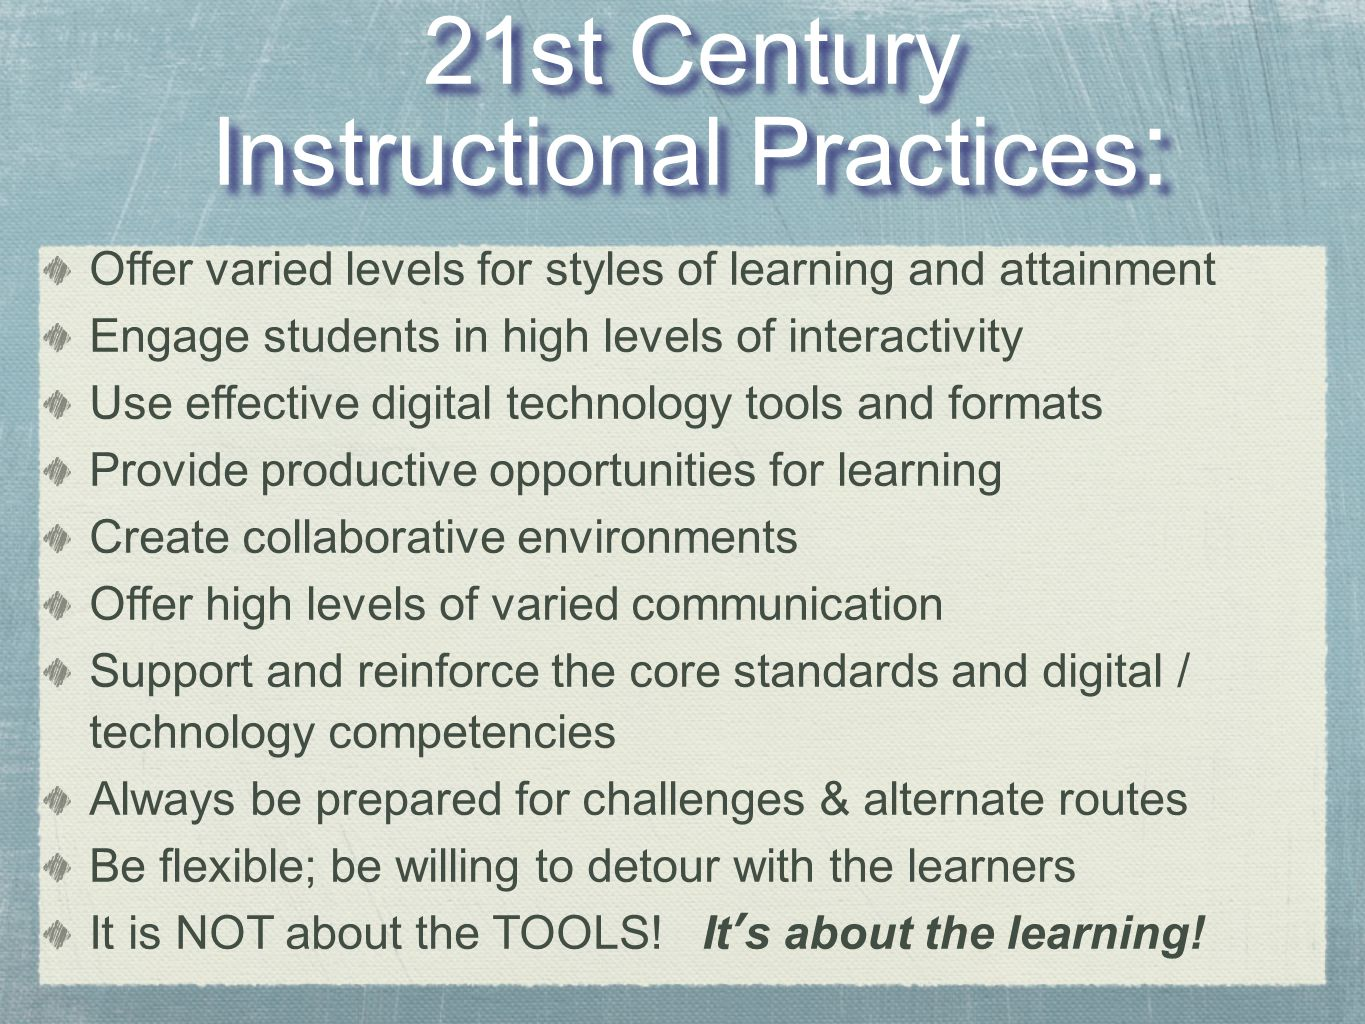 21st Century Instructional Practices : 21st Century Instructional Practices : Offer varied levels for styles of learning and attainment Engage students in high levels of interactivity Use effective digital technology tools and formats Provide productive opportunities for learning Create collaborative environments Offer high levels of varied communication Support and reinforce the core standards and digital / technology competencies Always be prepared for challenges & alternate routes Be flexible; be willing to detour with the learners It is NOT about the TOOLS.